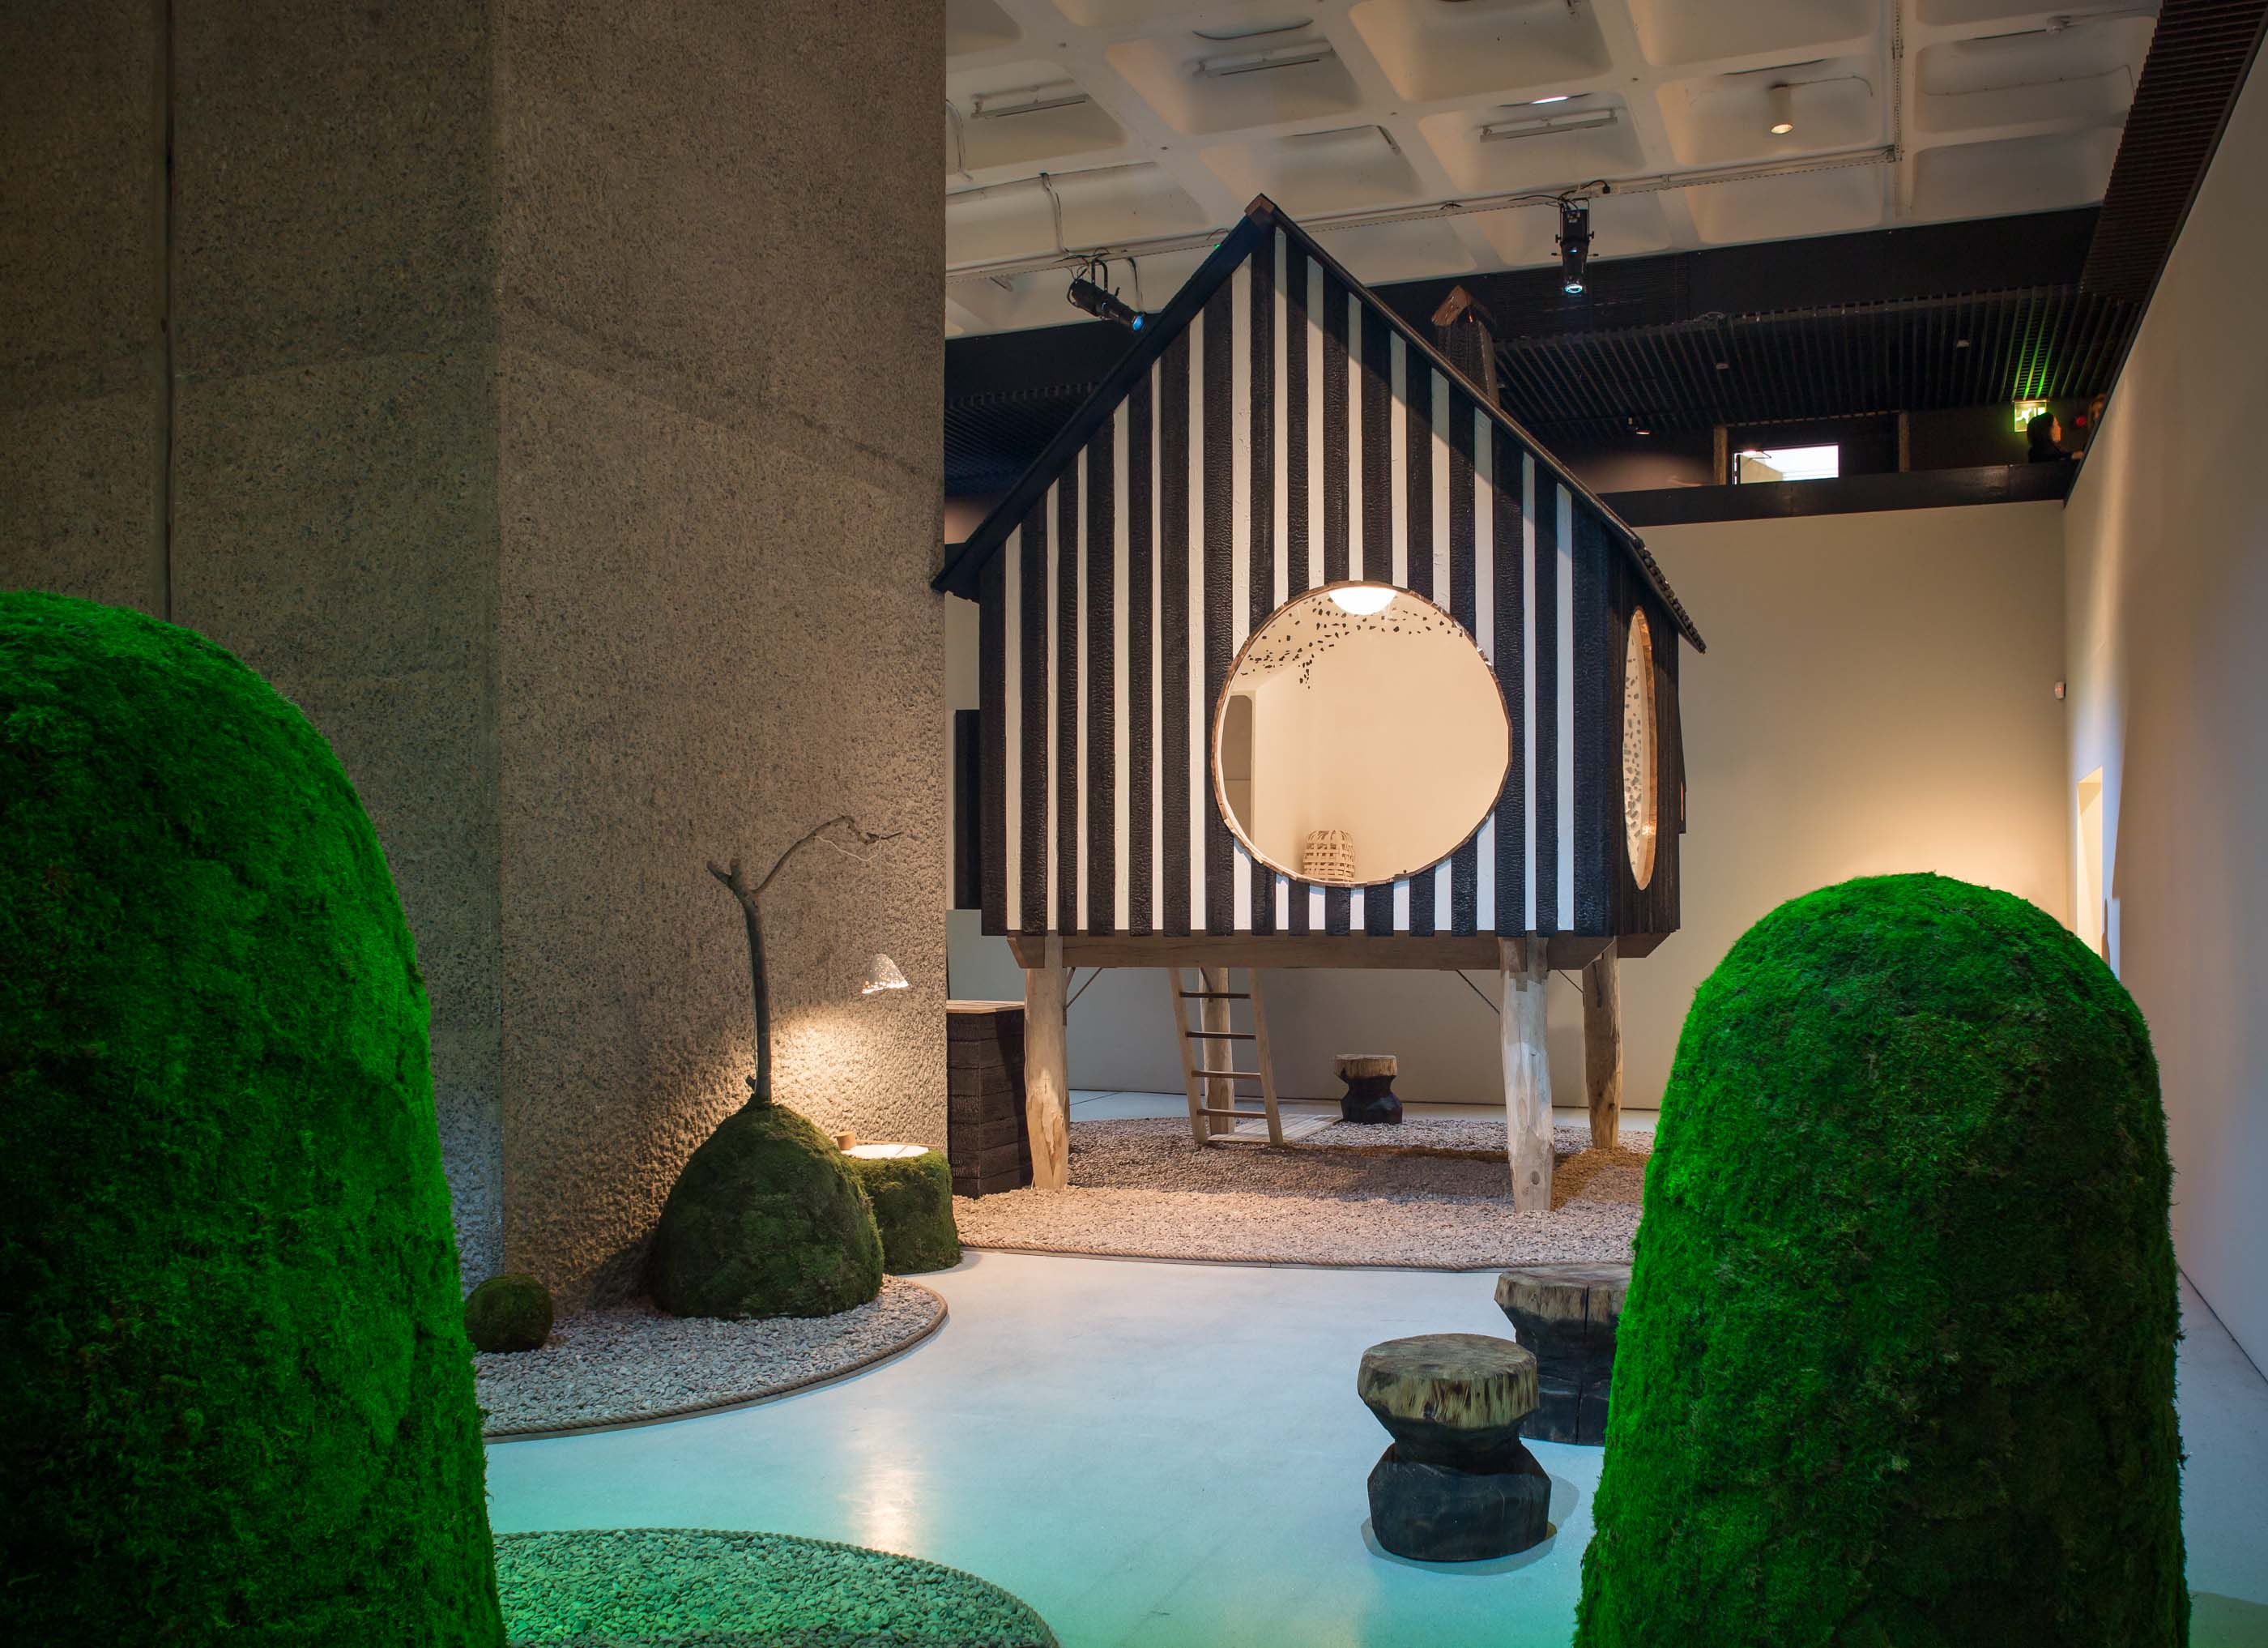 12. The Japanese House, Architecture and Life after 1945, Barbican Art Gallery, photo by Ben Tynegate